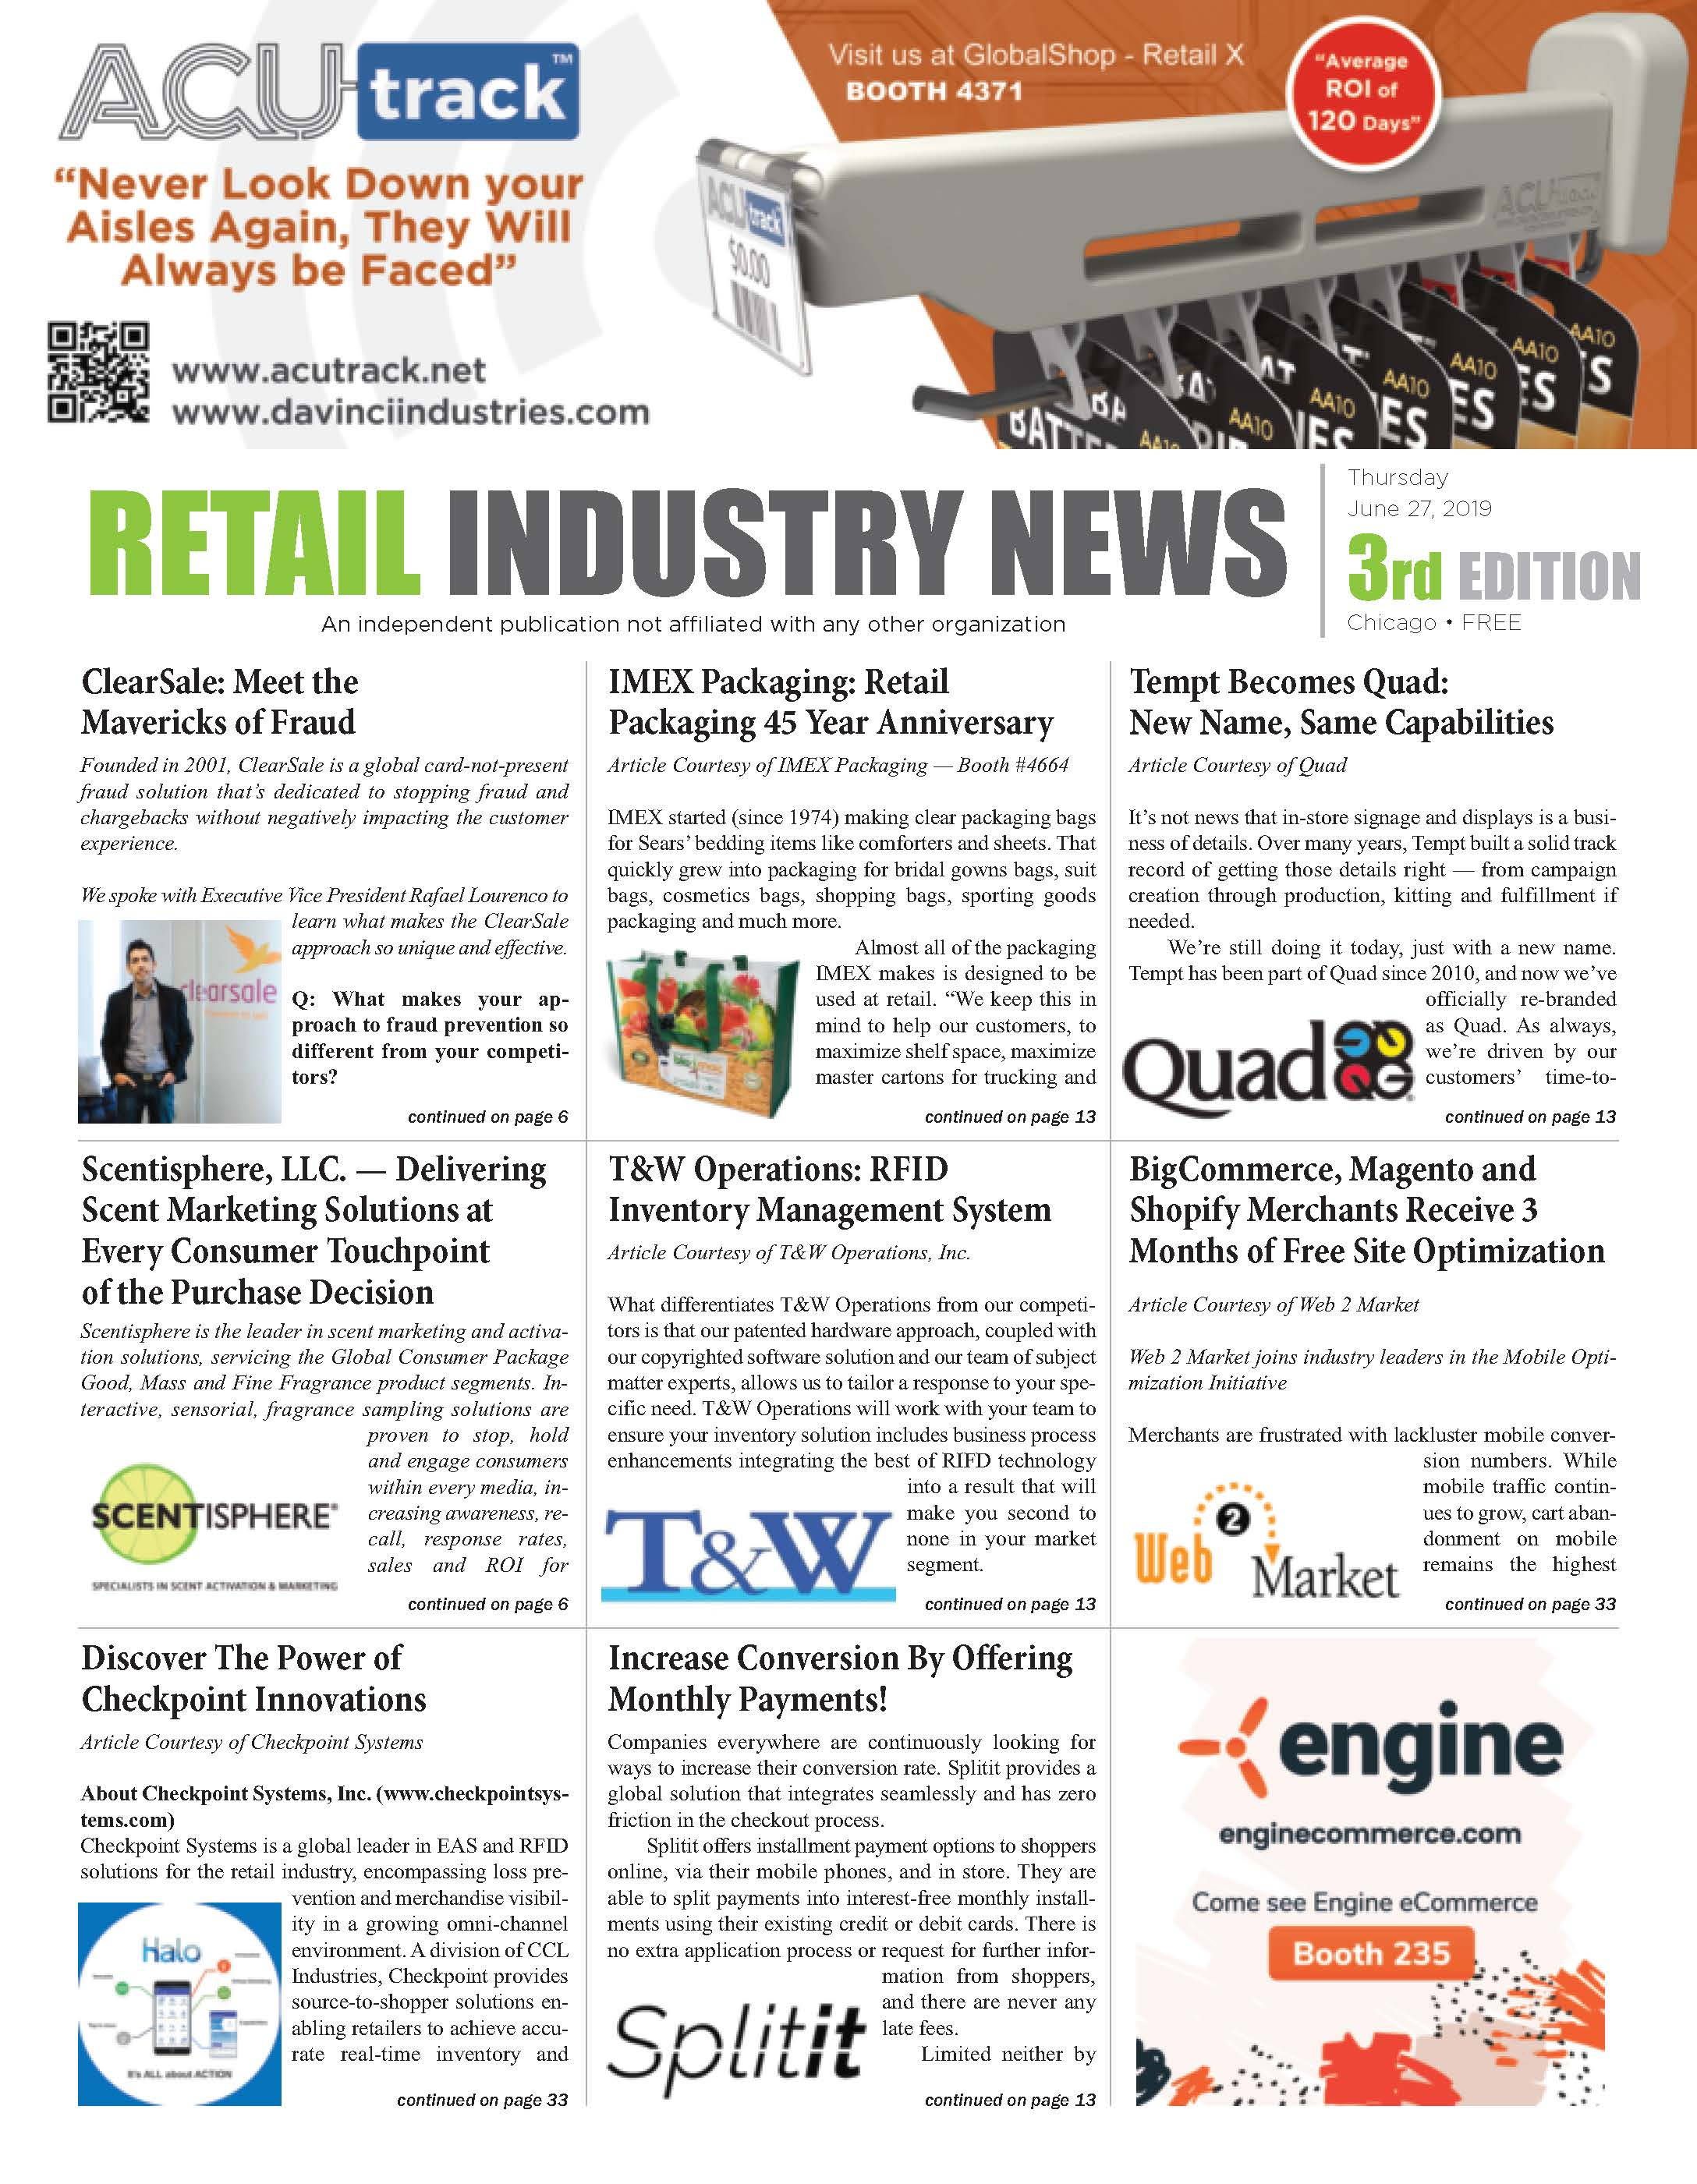 Retail Industry News